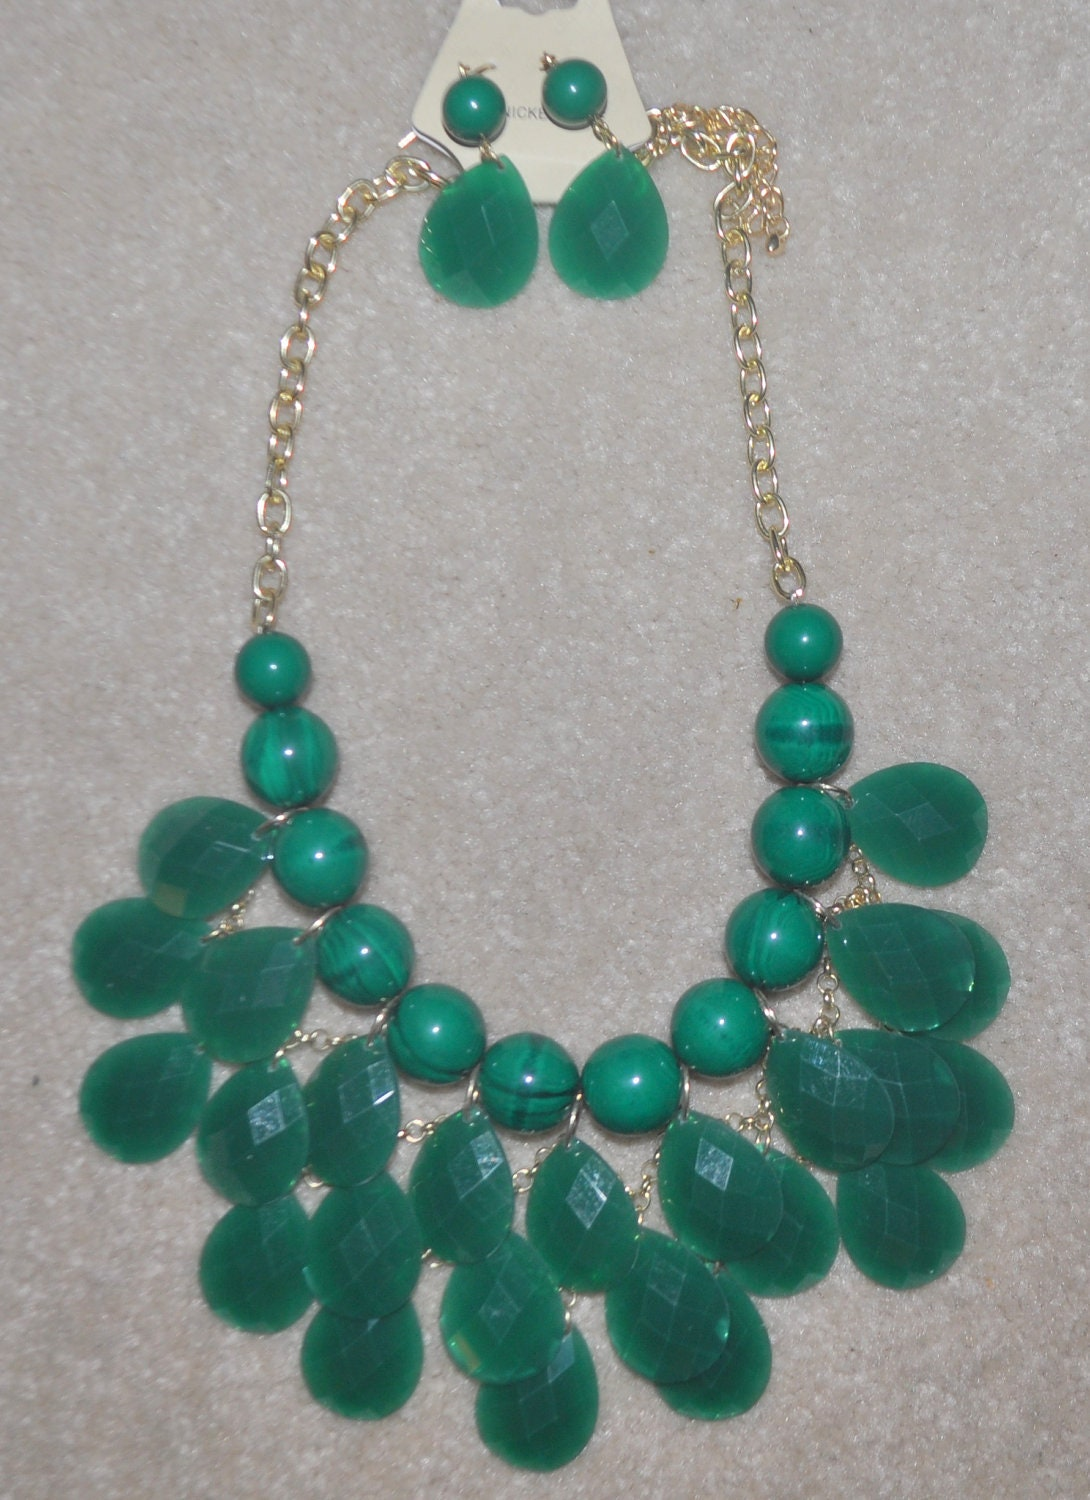 Bib necklace with earrings